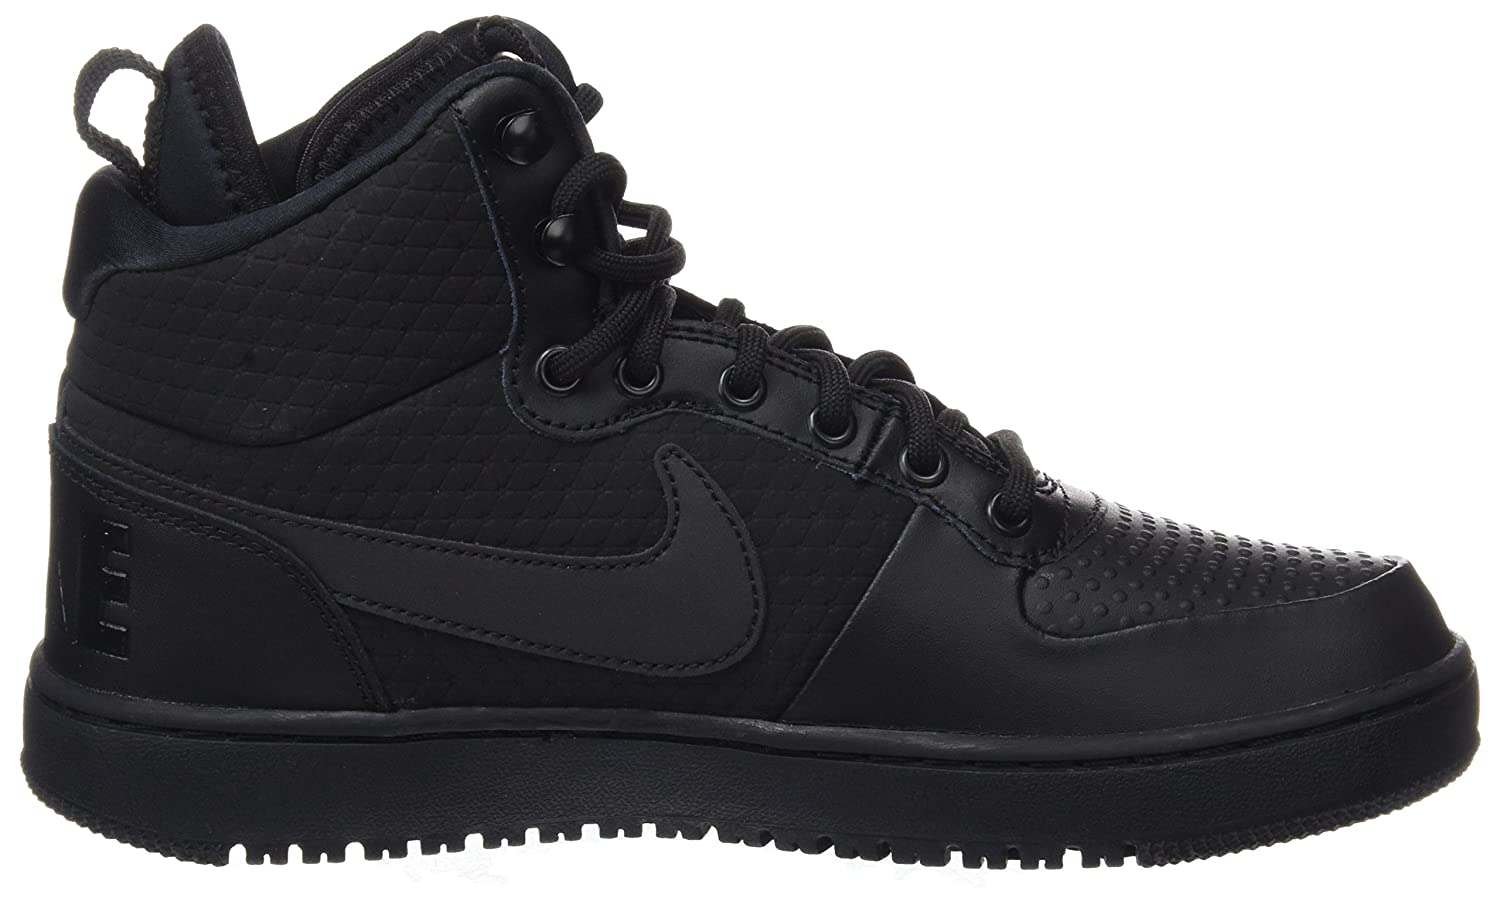 68dc0a3ab6629 Nike Court Borough Mid Winter Men s Waterproof Basketball Shoes (8. 5 D(M)  US